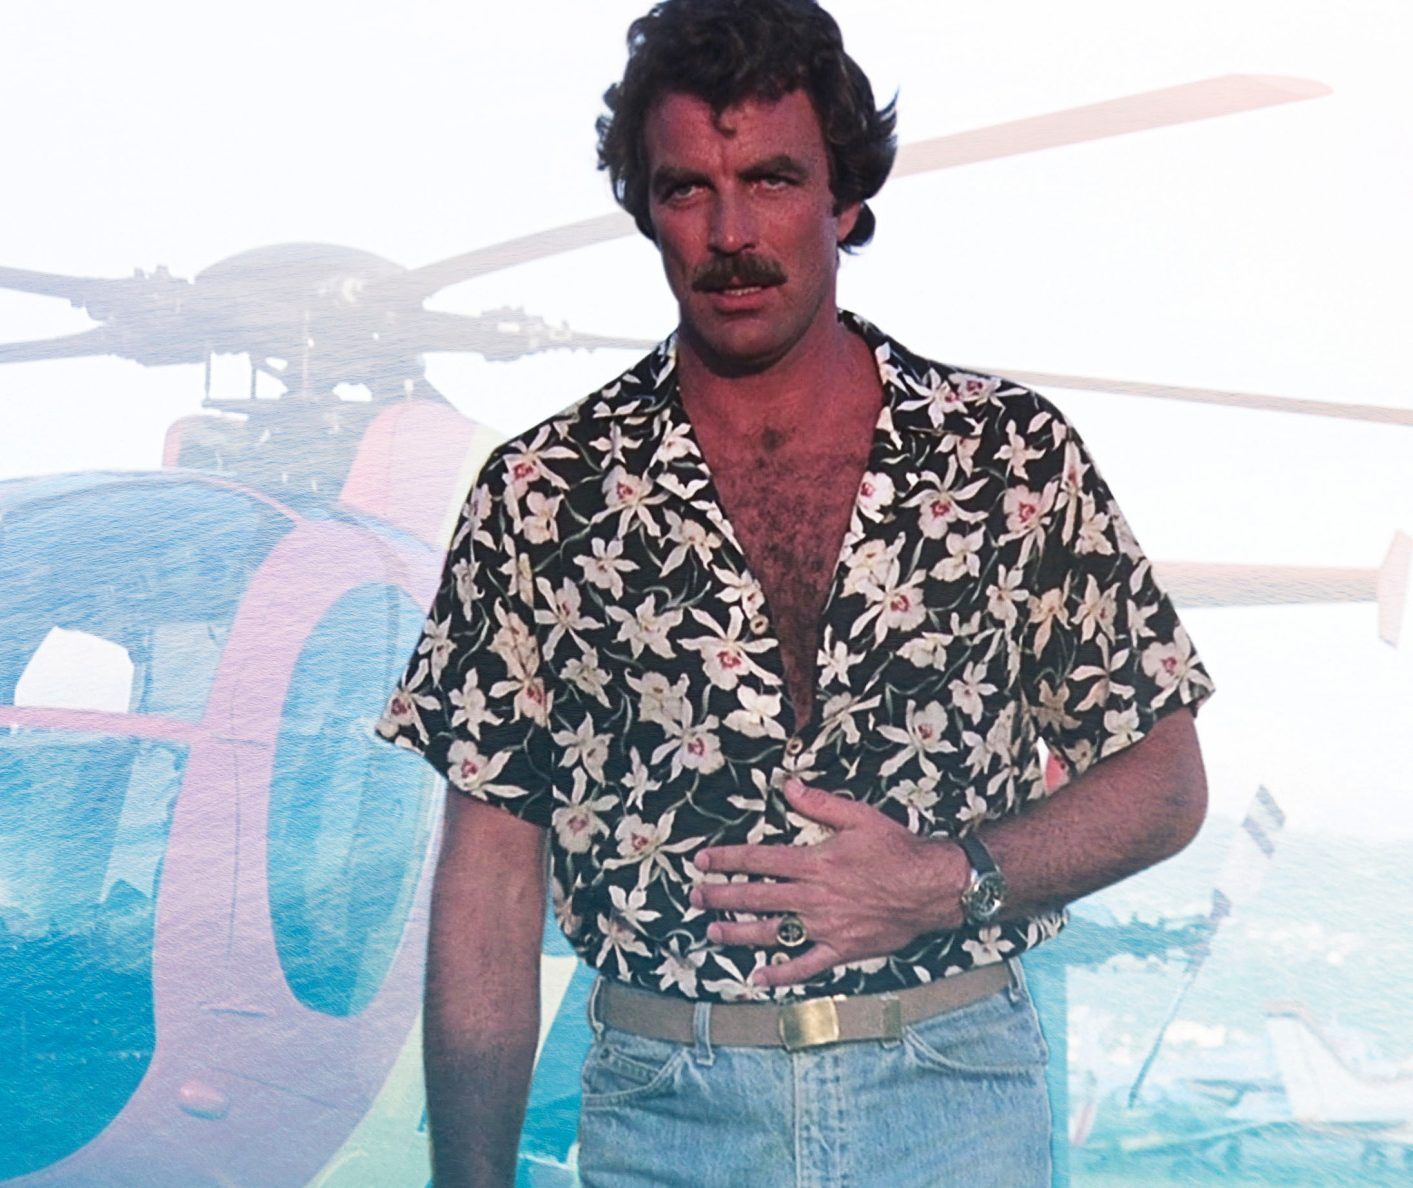 Magnum PI Summer Sexy Heartthrob e1614697145889 25 Things You Didn't Know About Magnum, P.I.